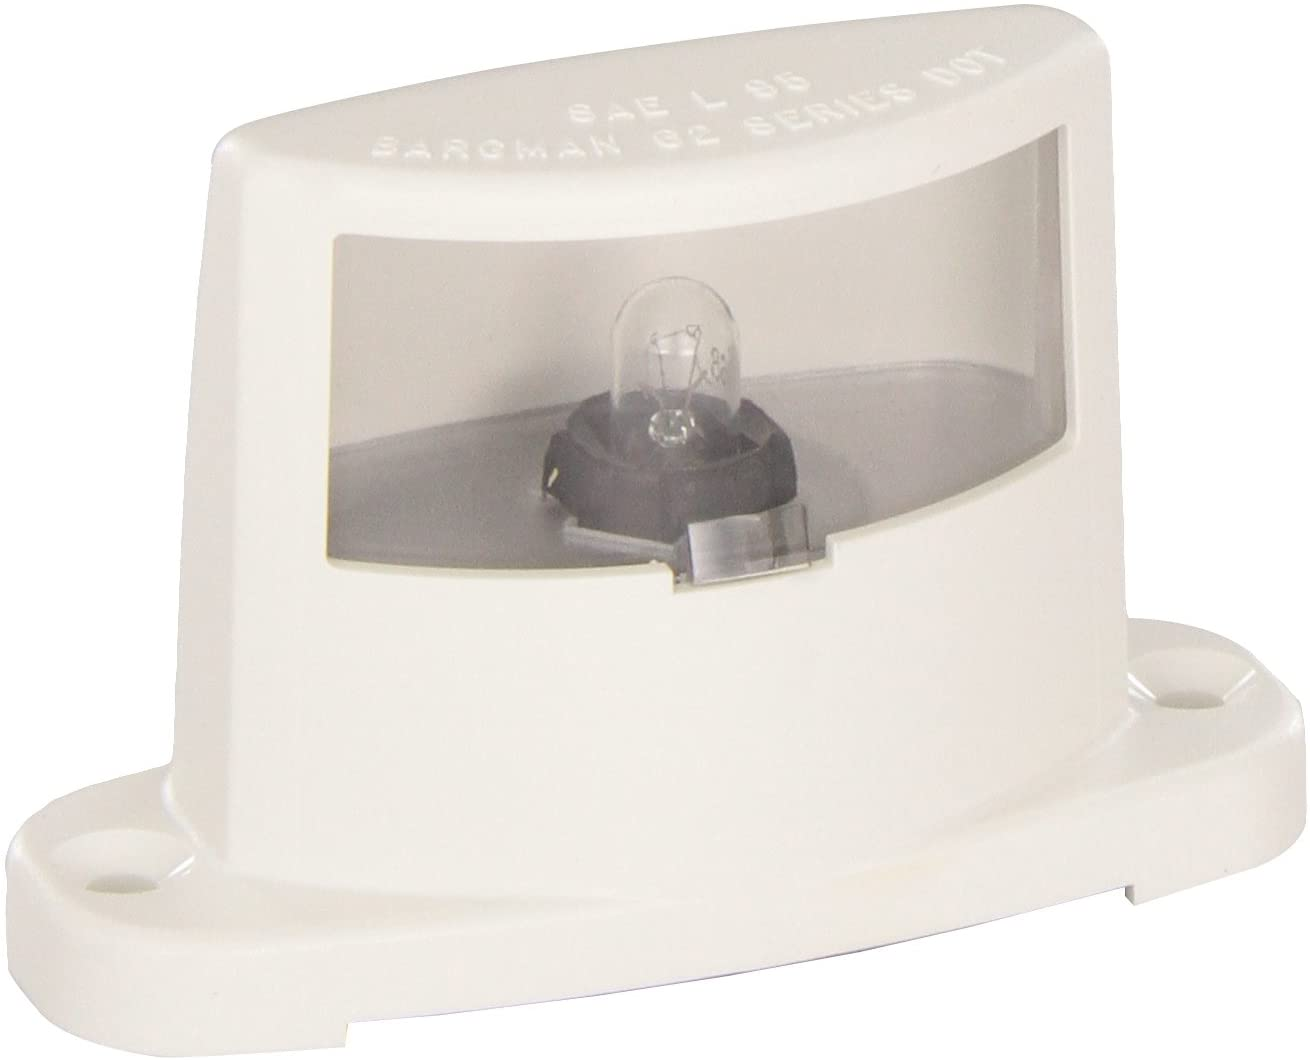 Bargman 30-62-103 License Light with White Base